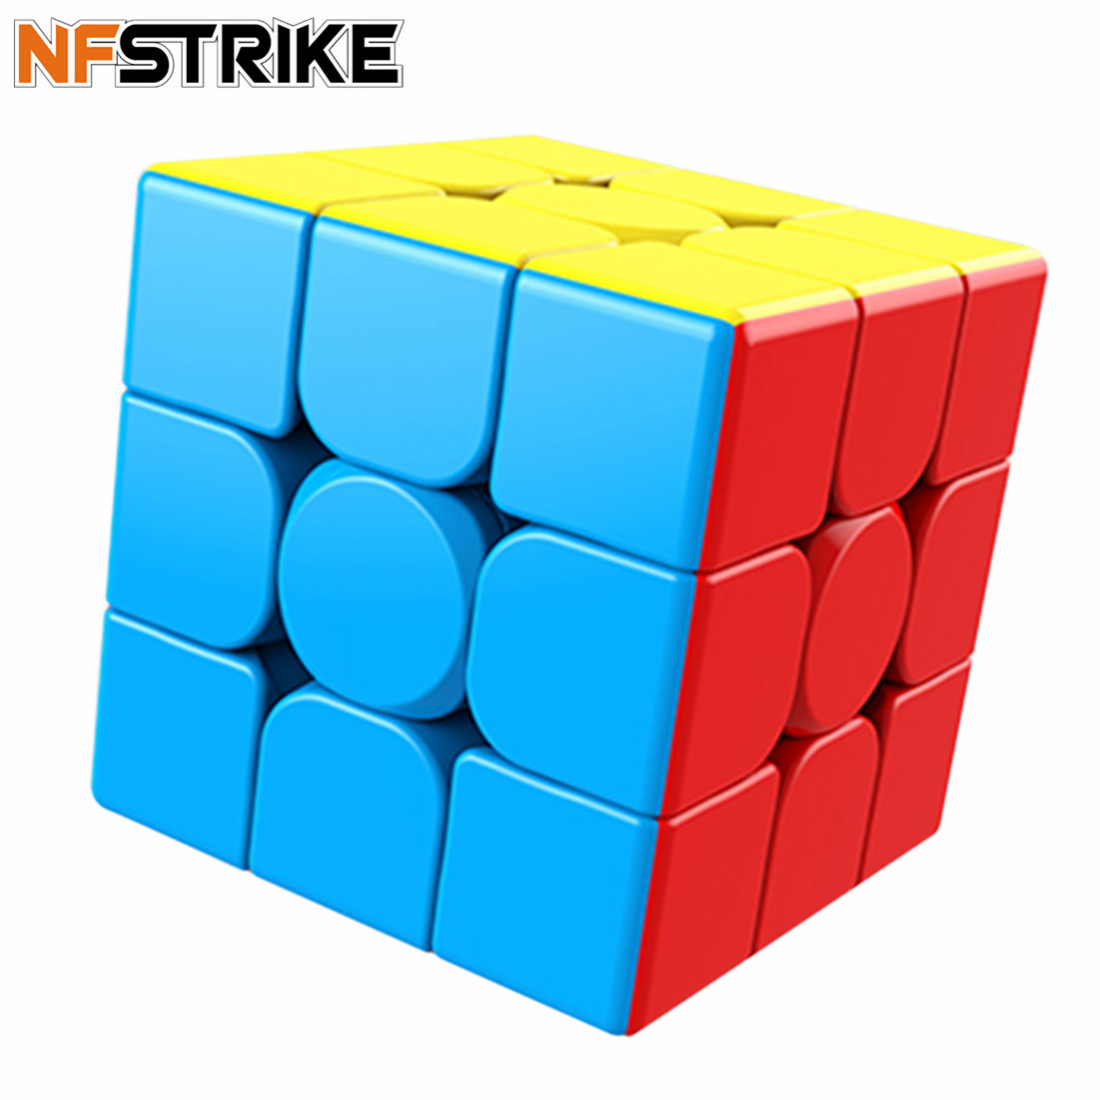 Moyu MeiLong MF8841 3-Layer Magic Cube Puzzle For Kids Adults Small Gifts 2019- Colorful